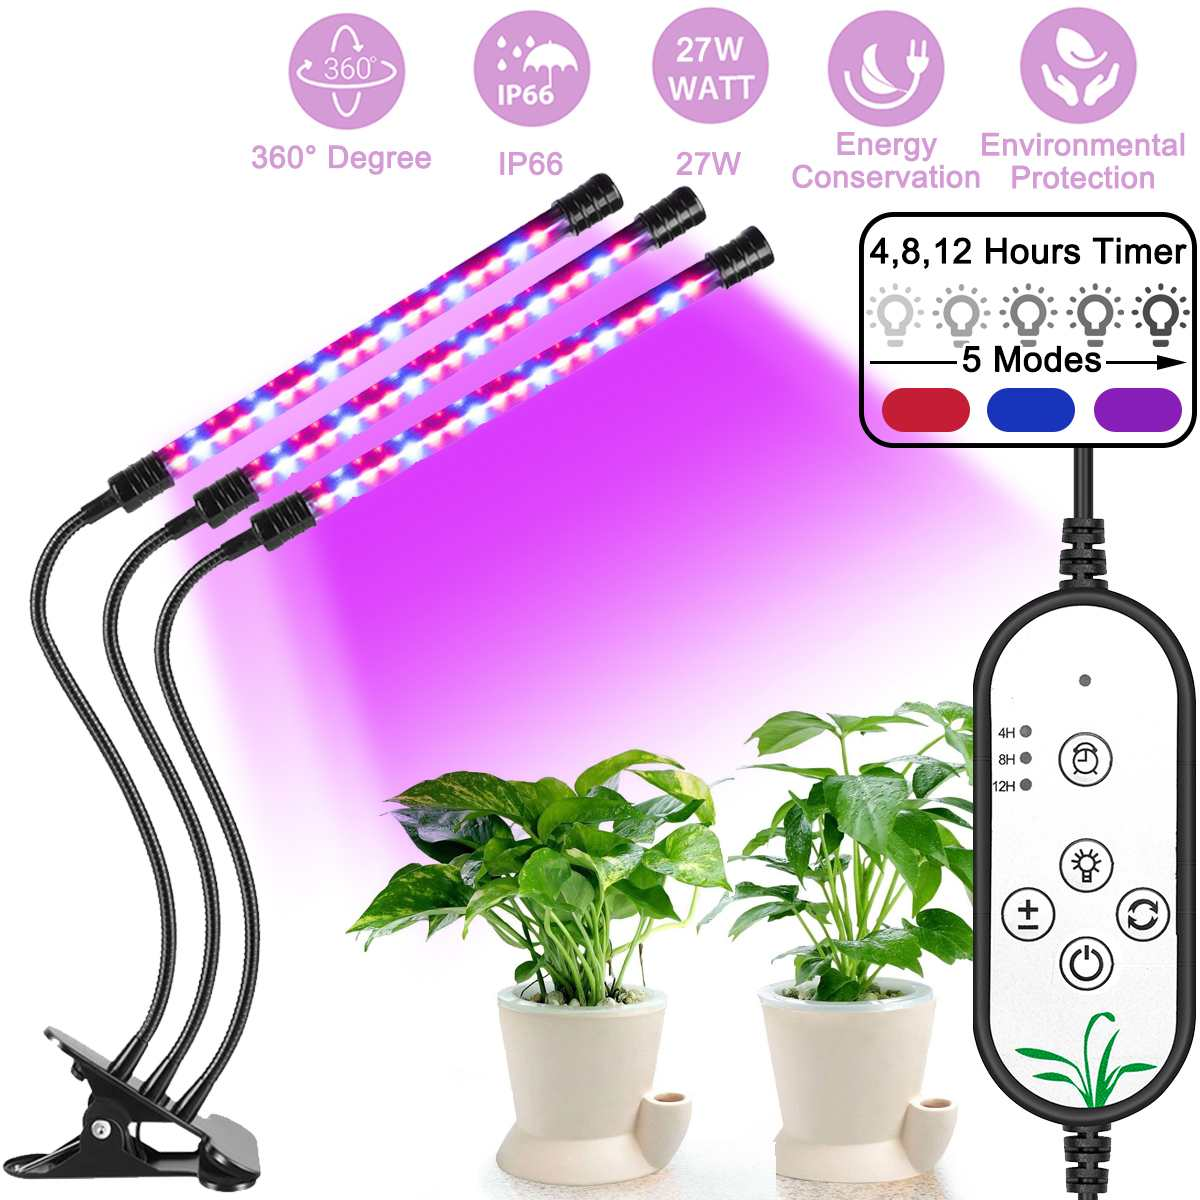 USB DC 5V Phyto Lamp For Indoor Plants Hydroponics 27/18/9/3W 3/2/1 Heads LED Grow Light Plant Growing Lamp Greenhouse Dimma